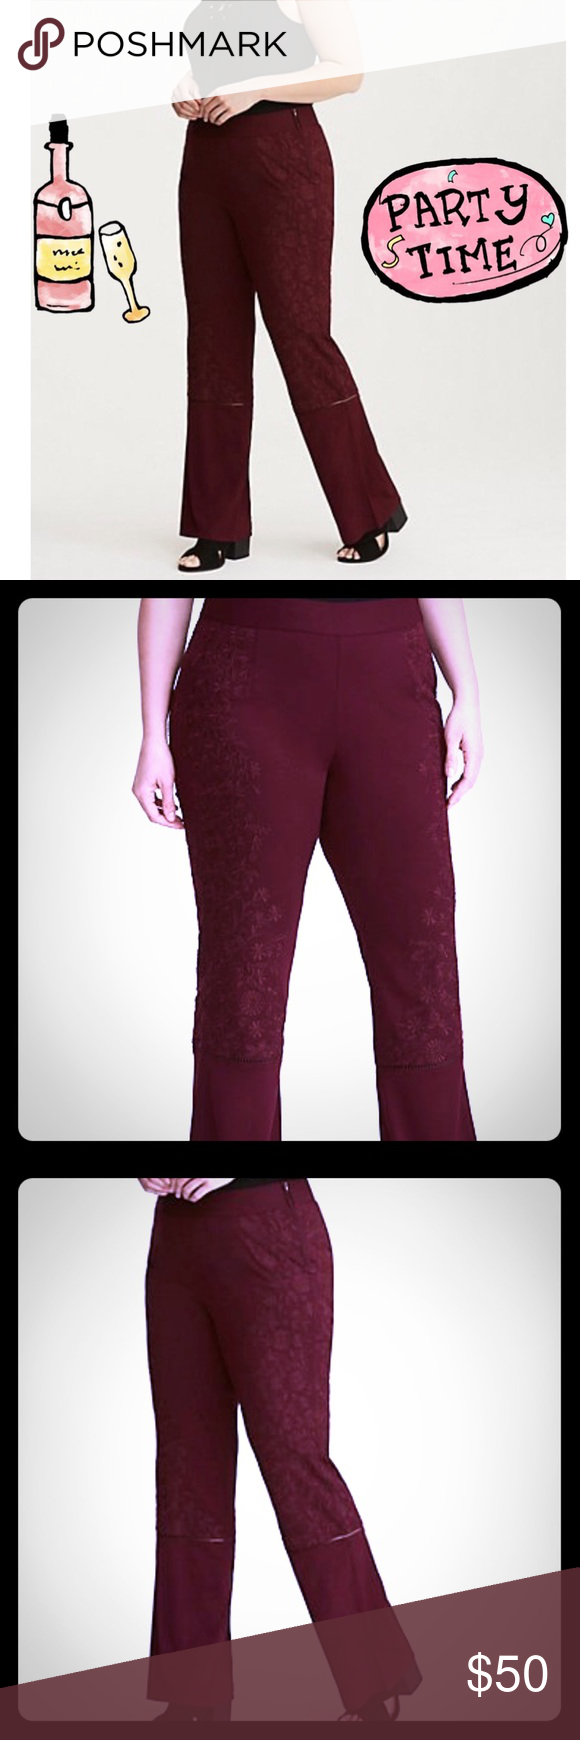 1313a98cd11 Torrid Insider Collection Embroidered Flare Pants Shake